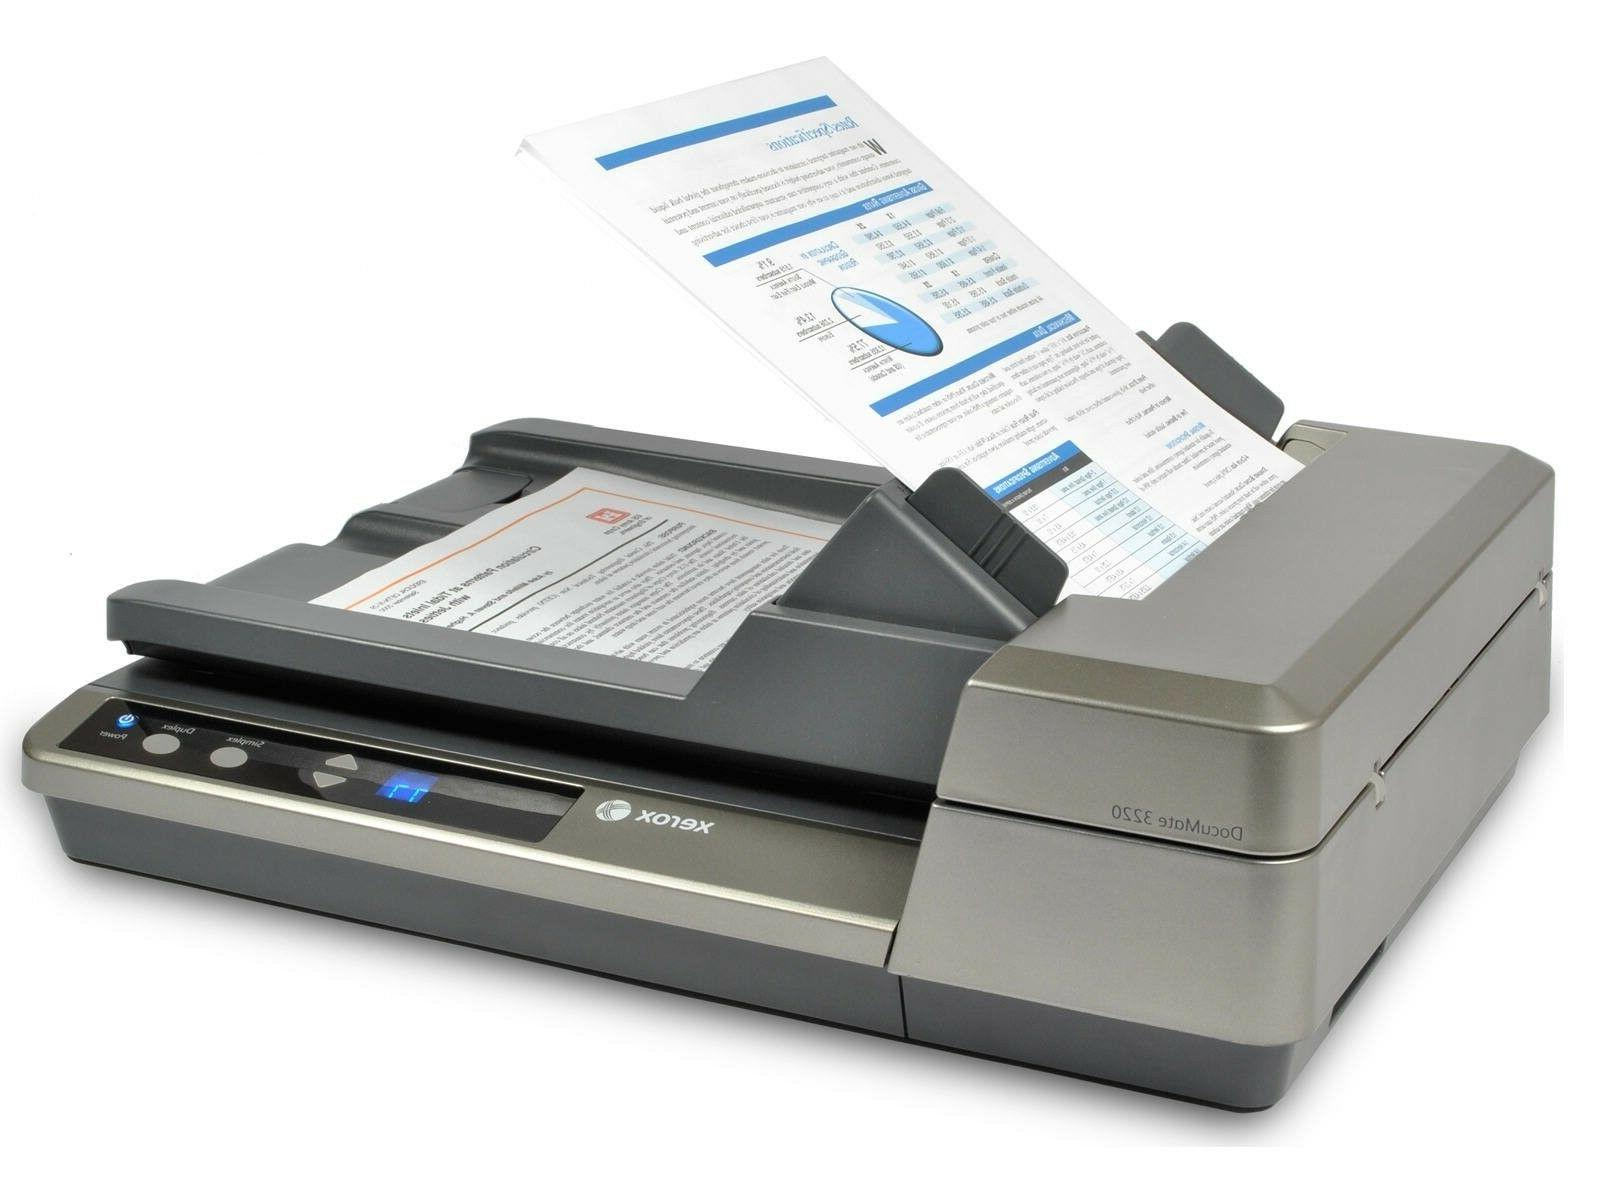 documate 3220 document scanner